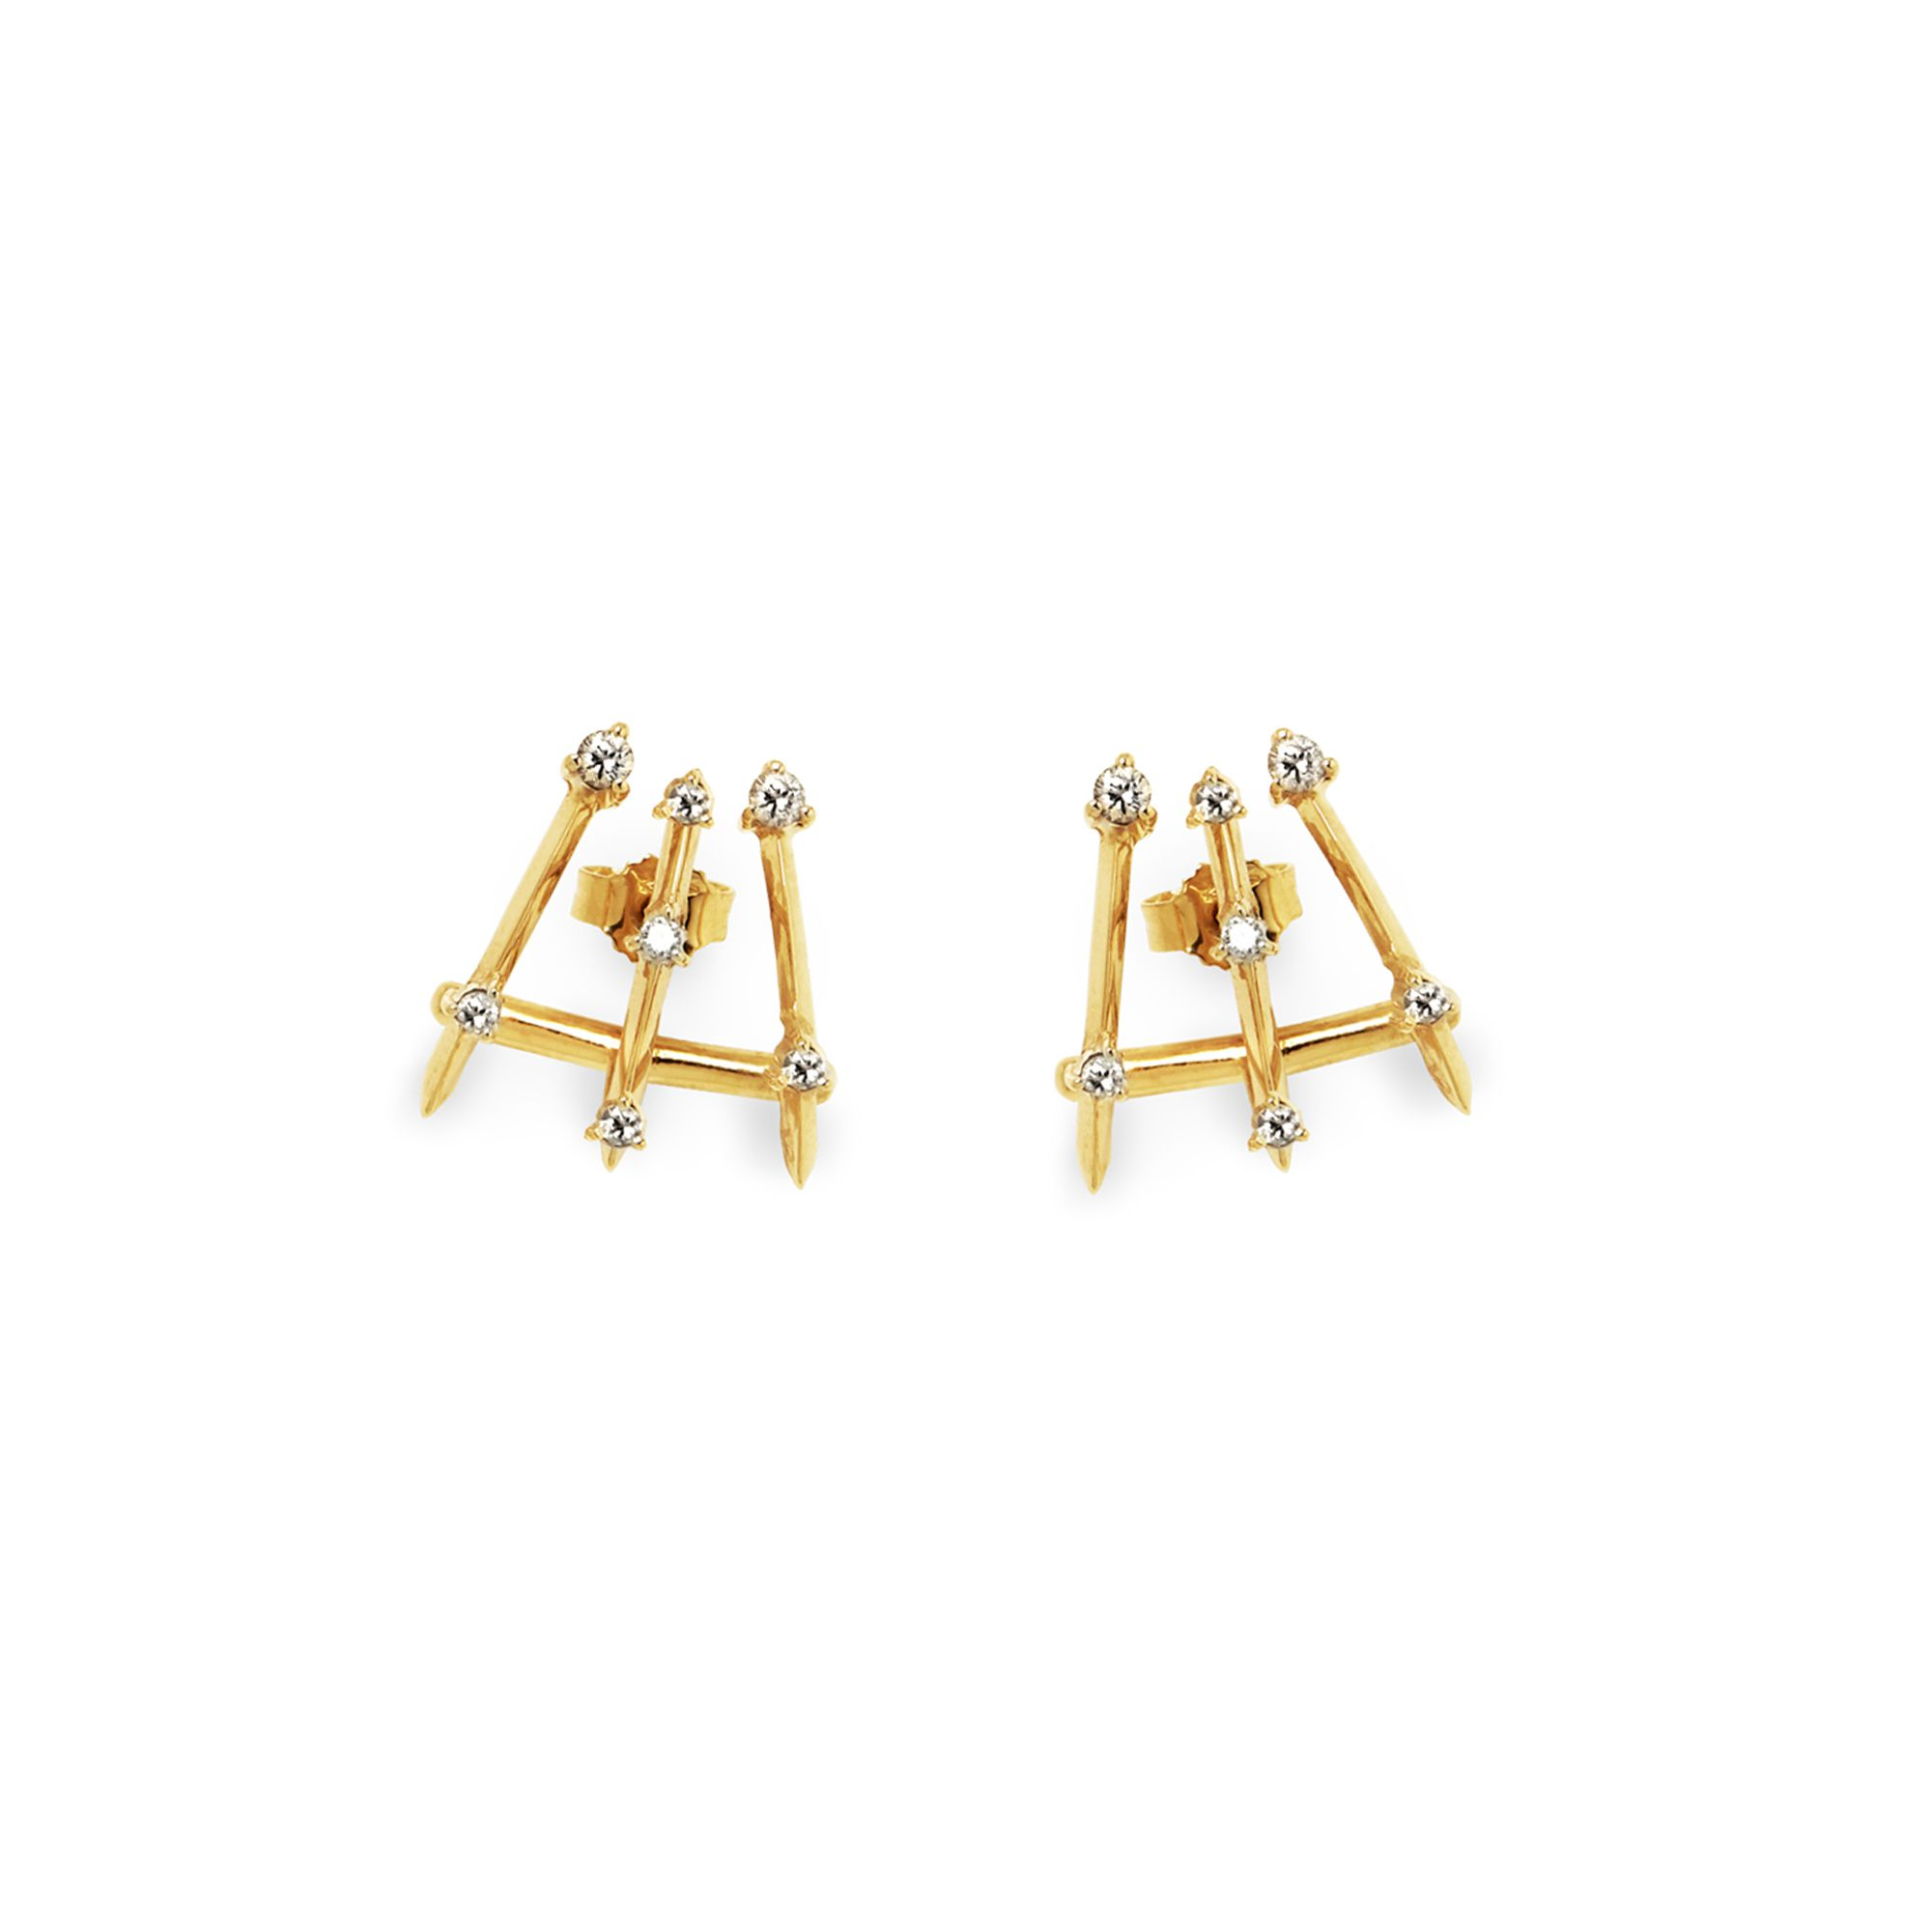 3 element 'Balance' earrings Earrings in yellow gold and diamonds